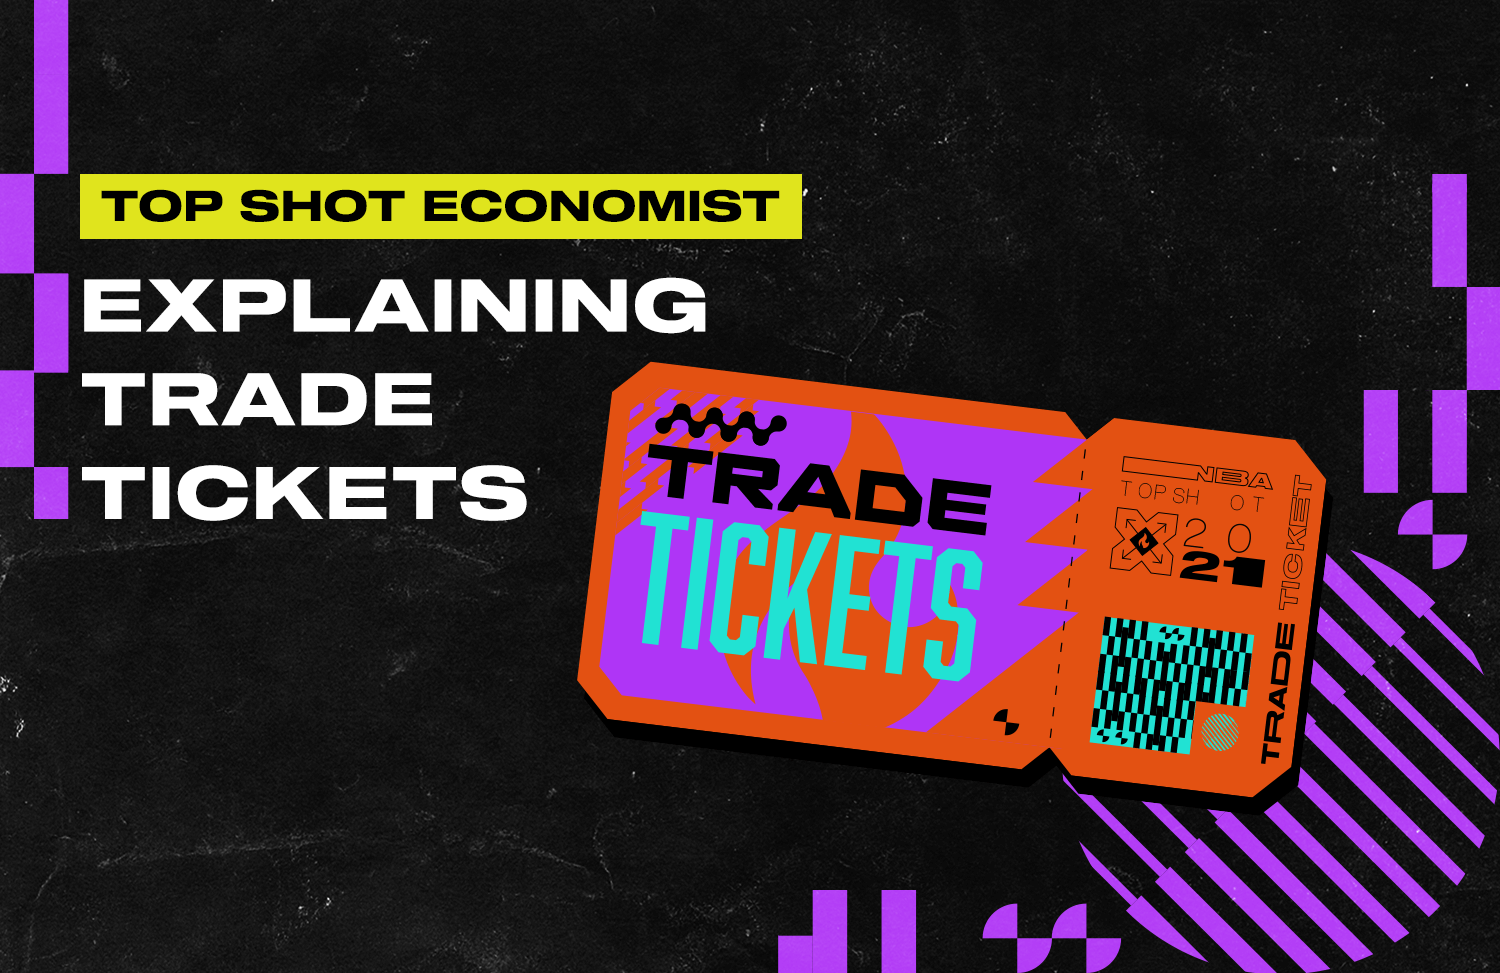 From The Economist: What you need to know about Trade Tickets.